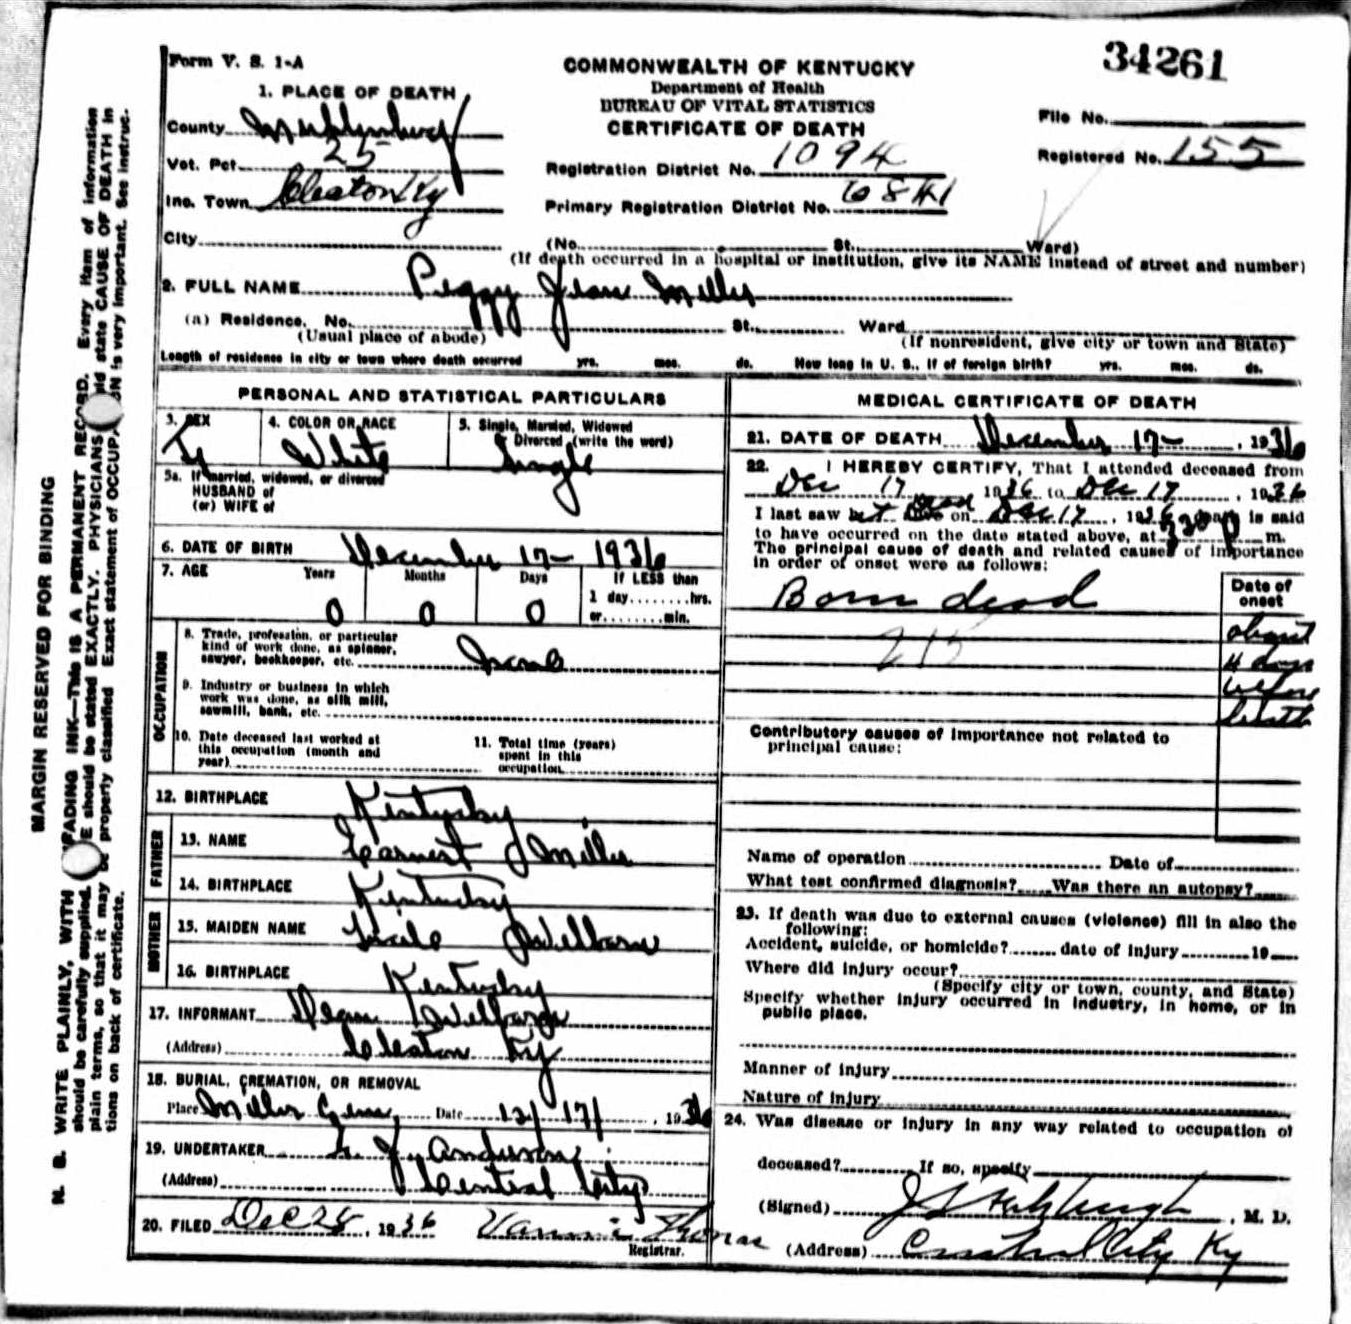 Death certificates m kentucky death certificate 34261 1betcityfo Images